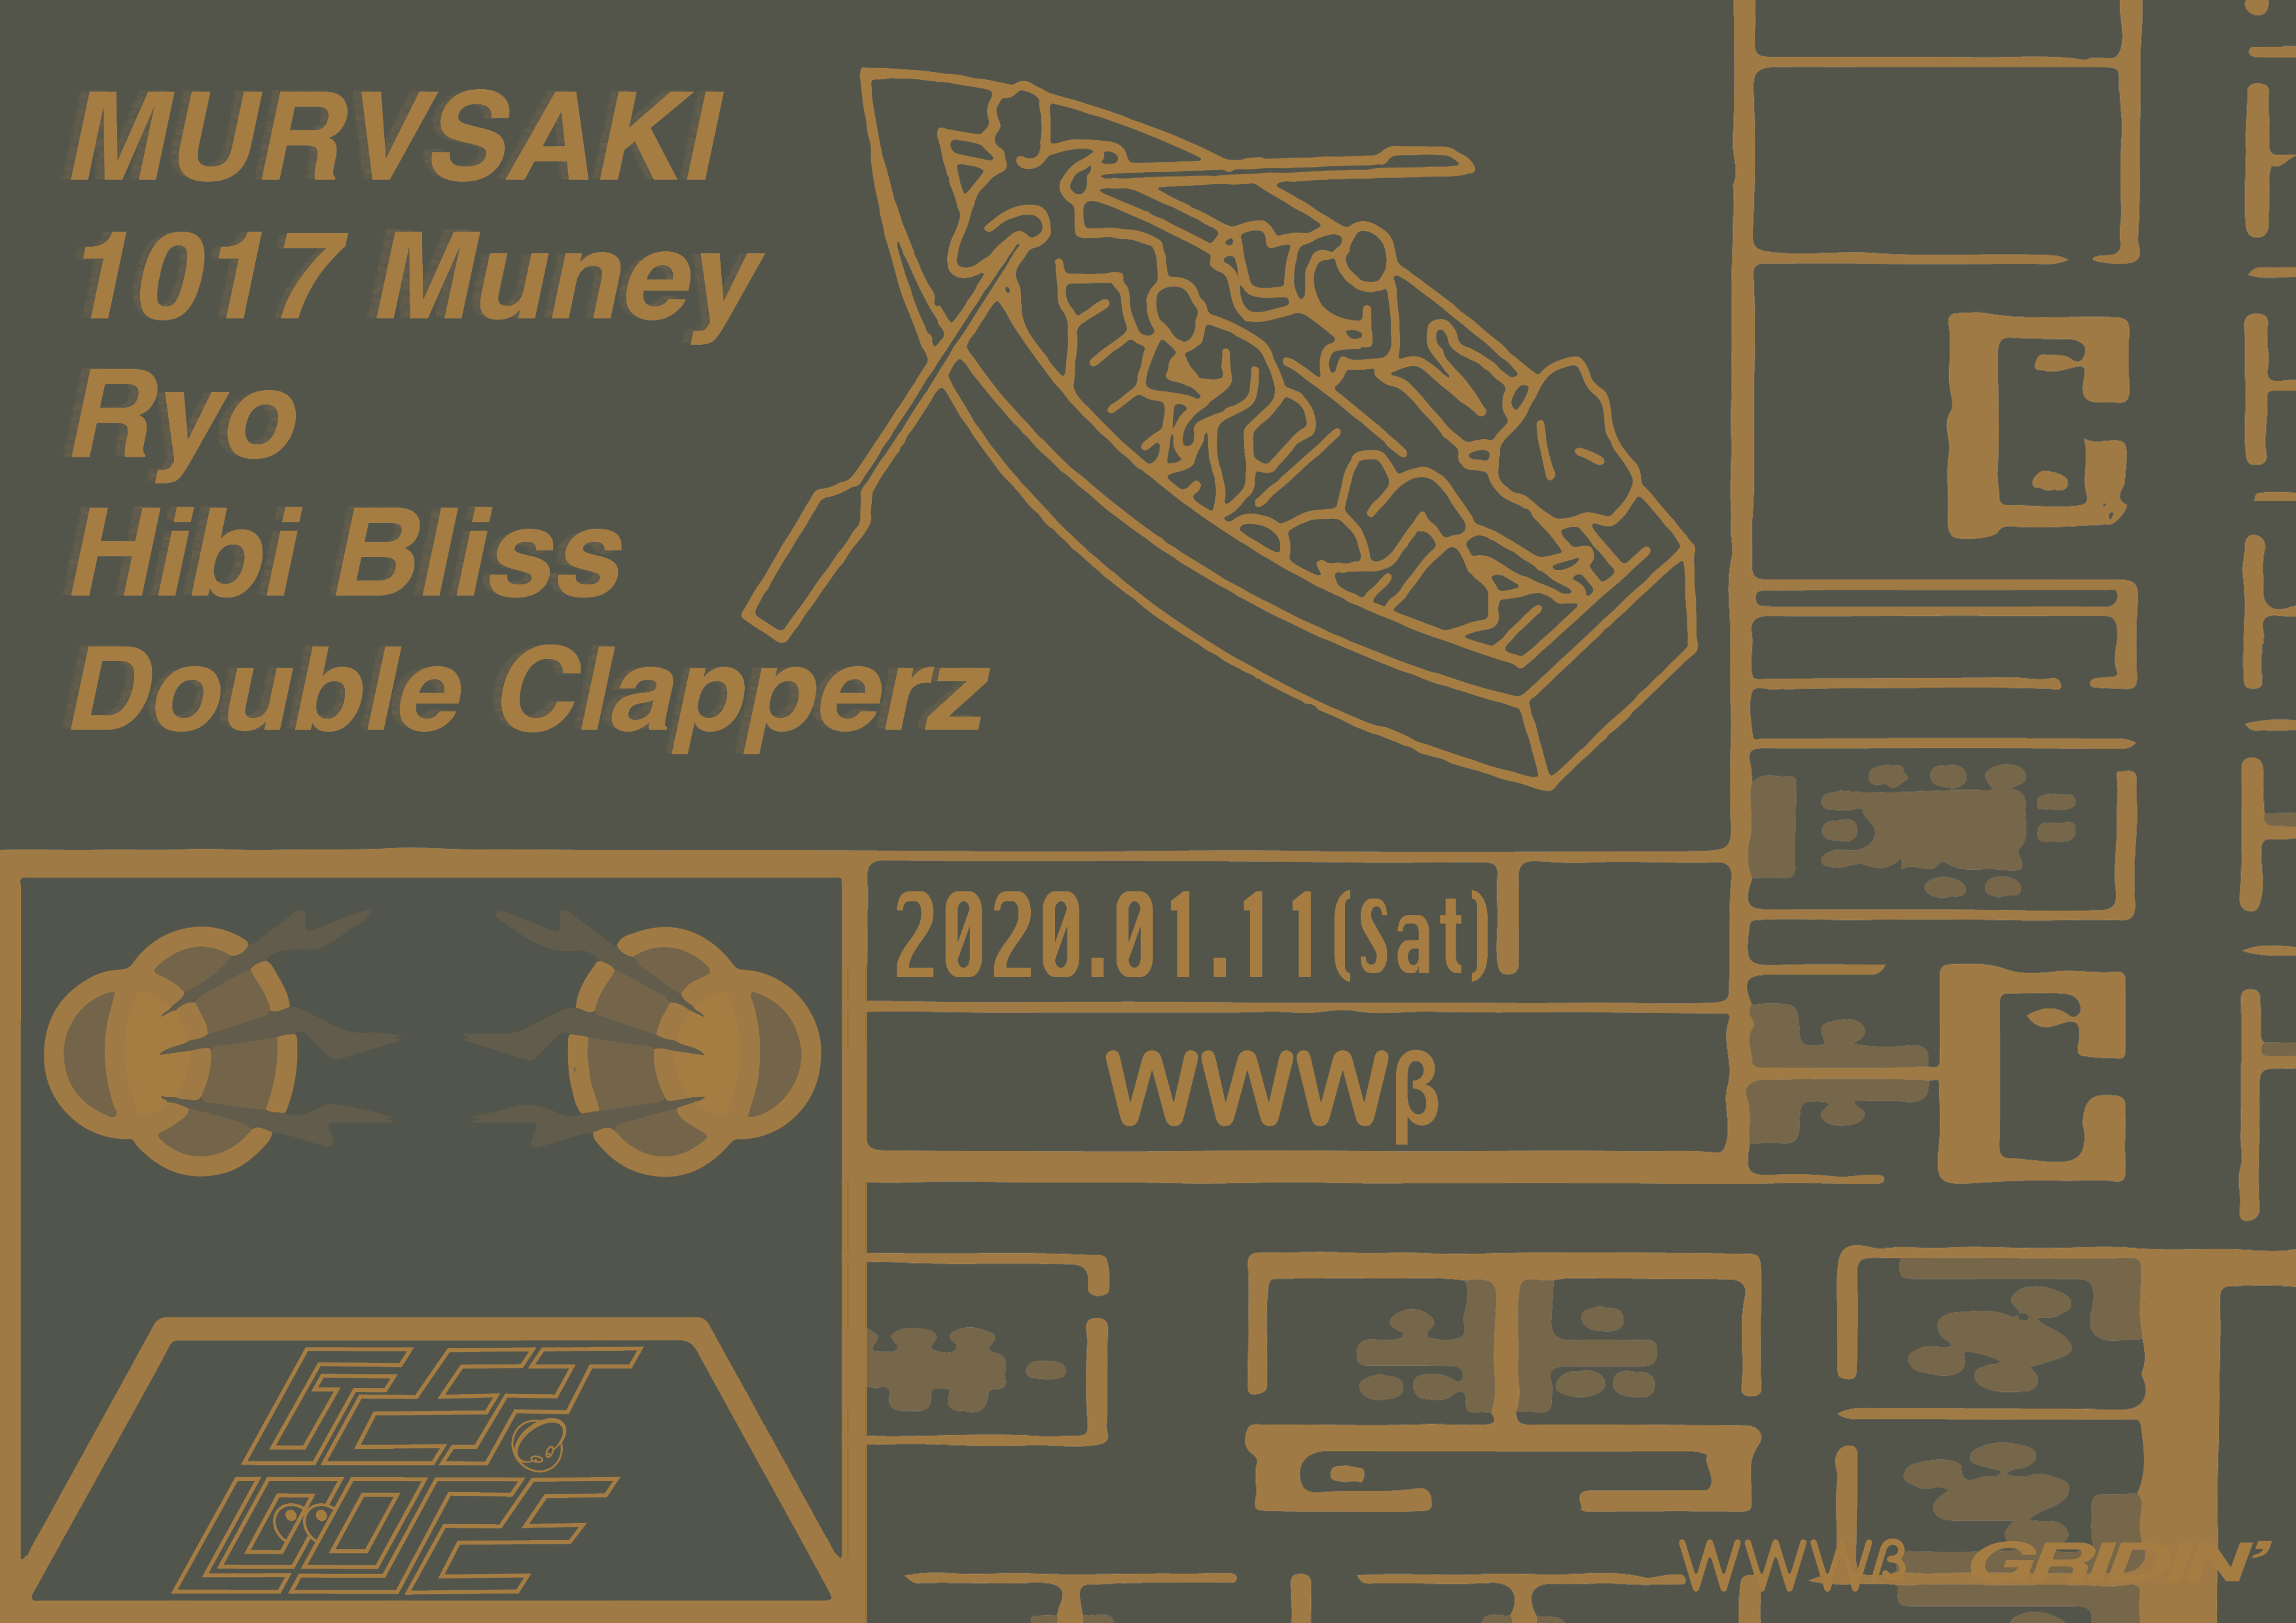 MURVSAKI / Hibi Bliss / 1017 Muney / Ryo / Double Clapperz